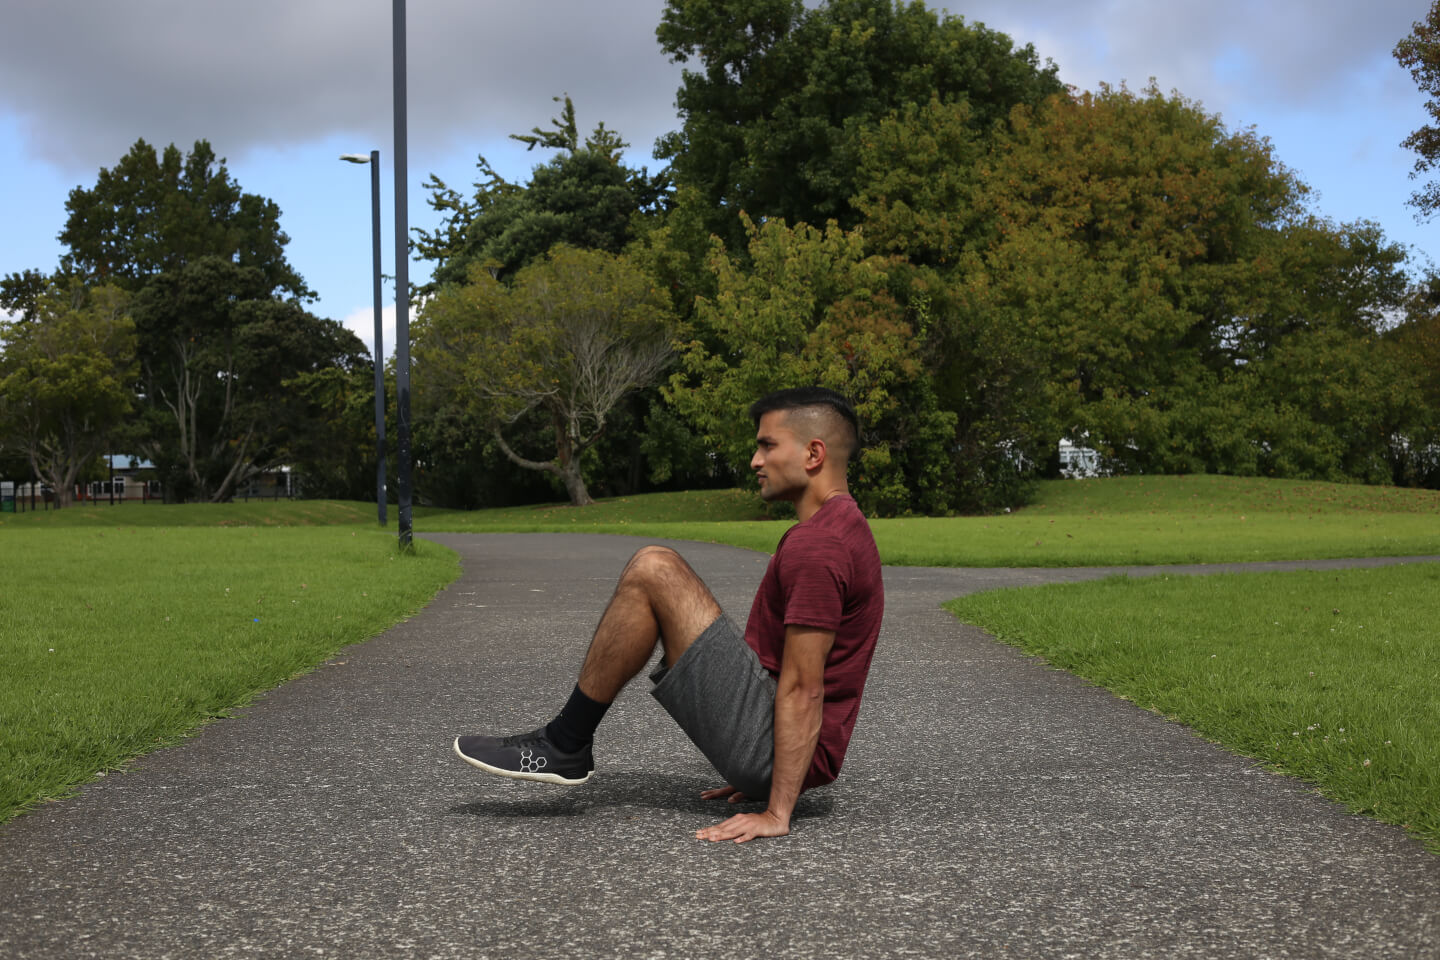 Dinesh demonstrating a tuck L sit